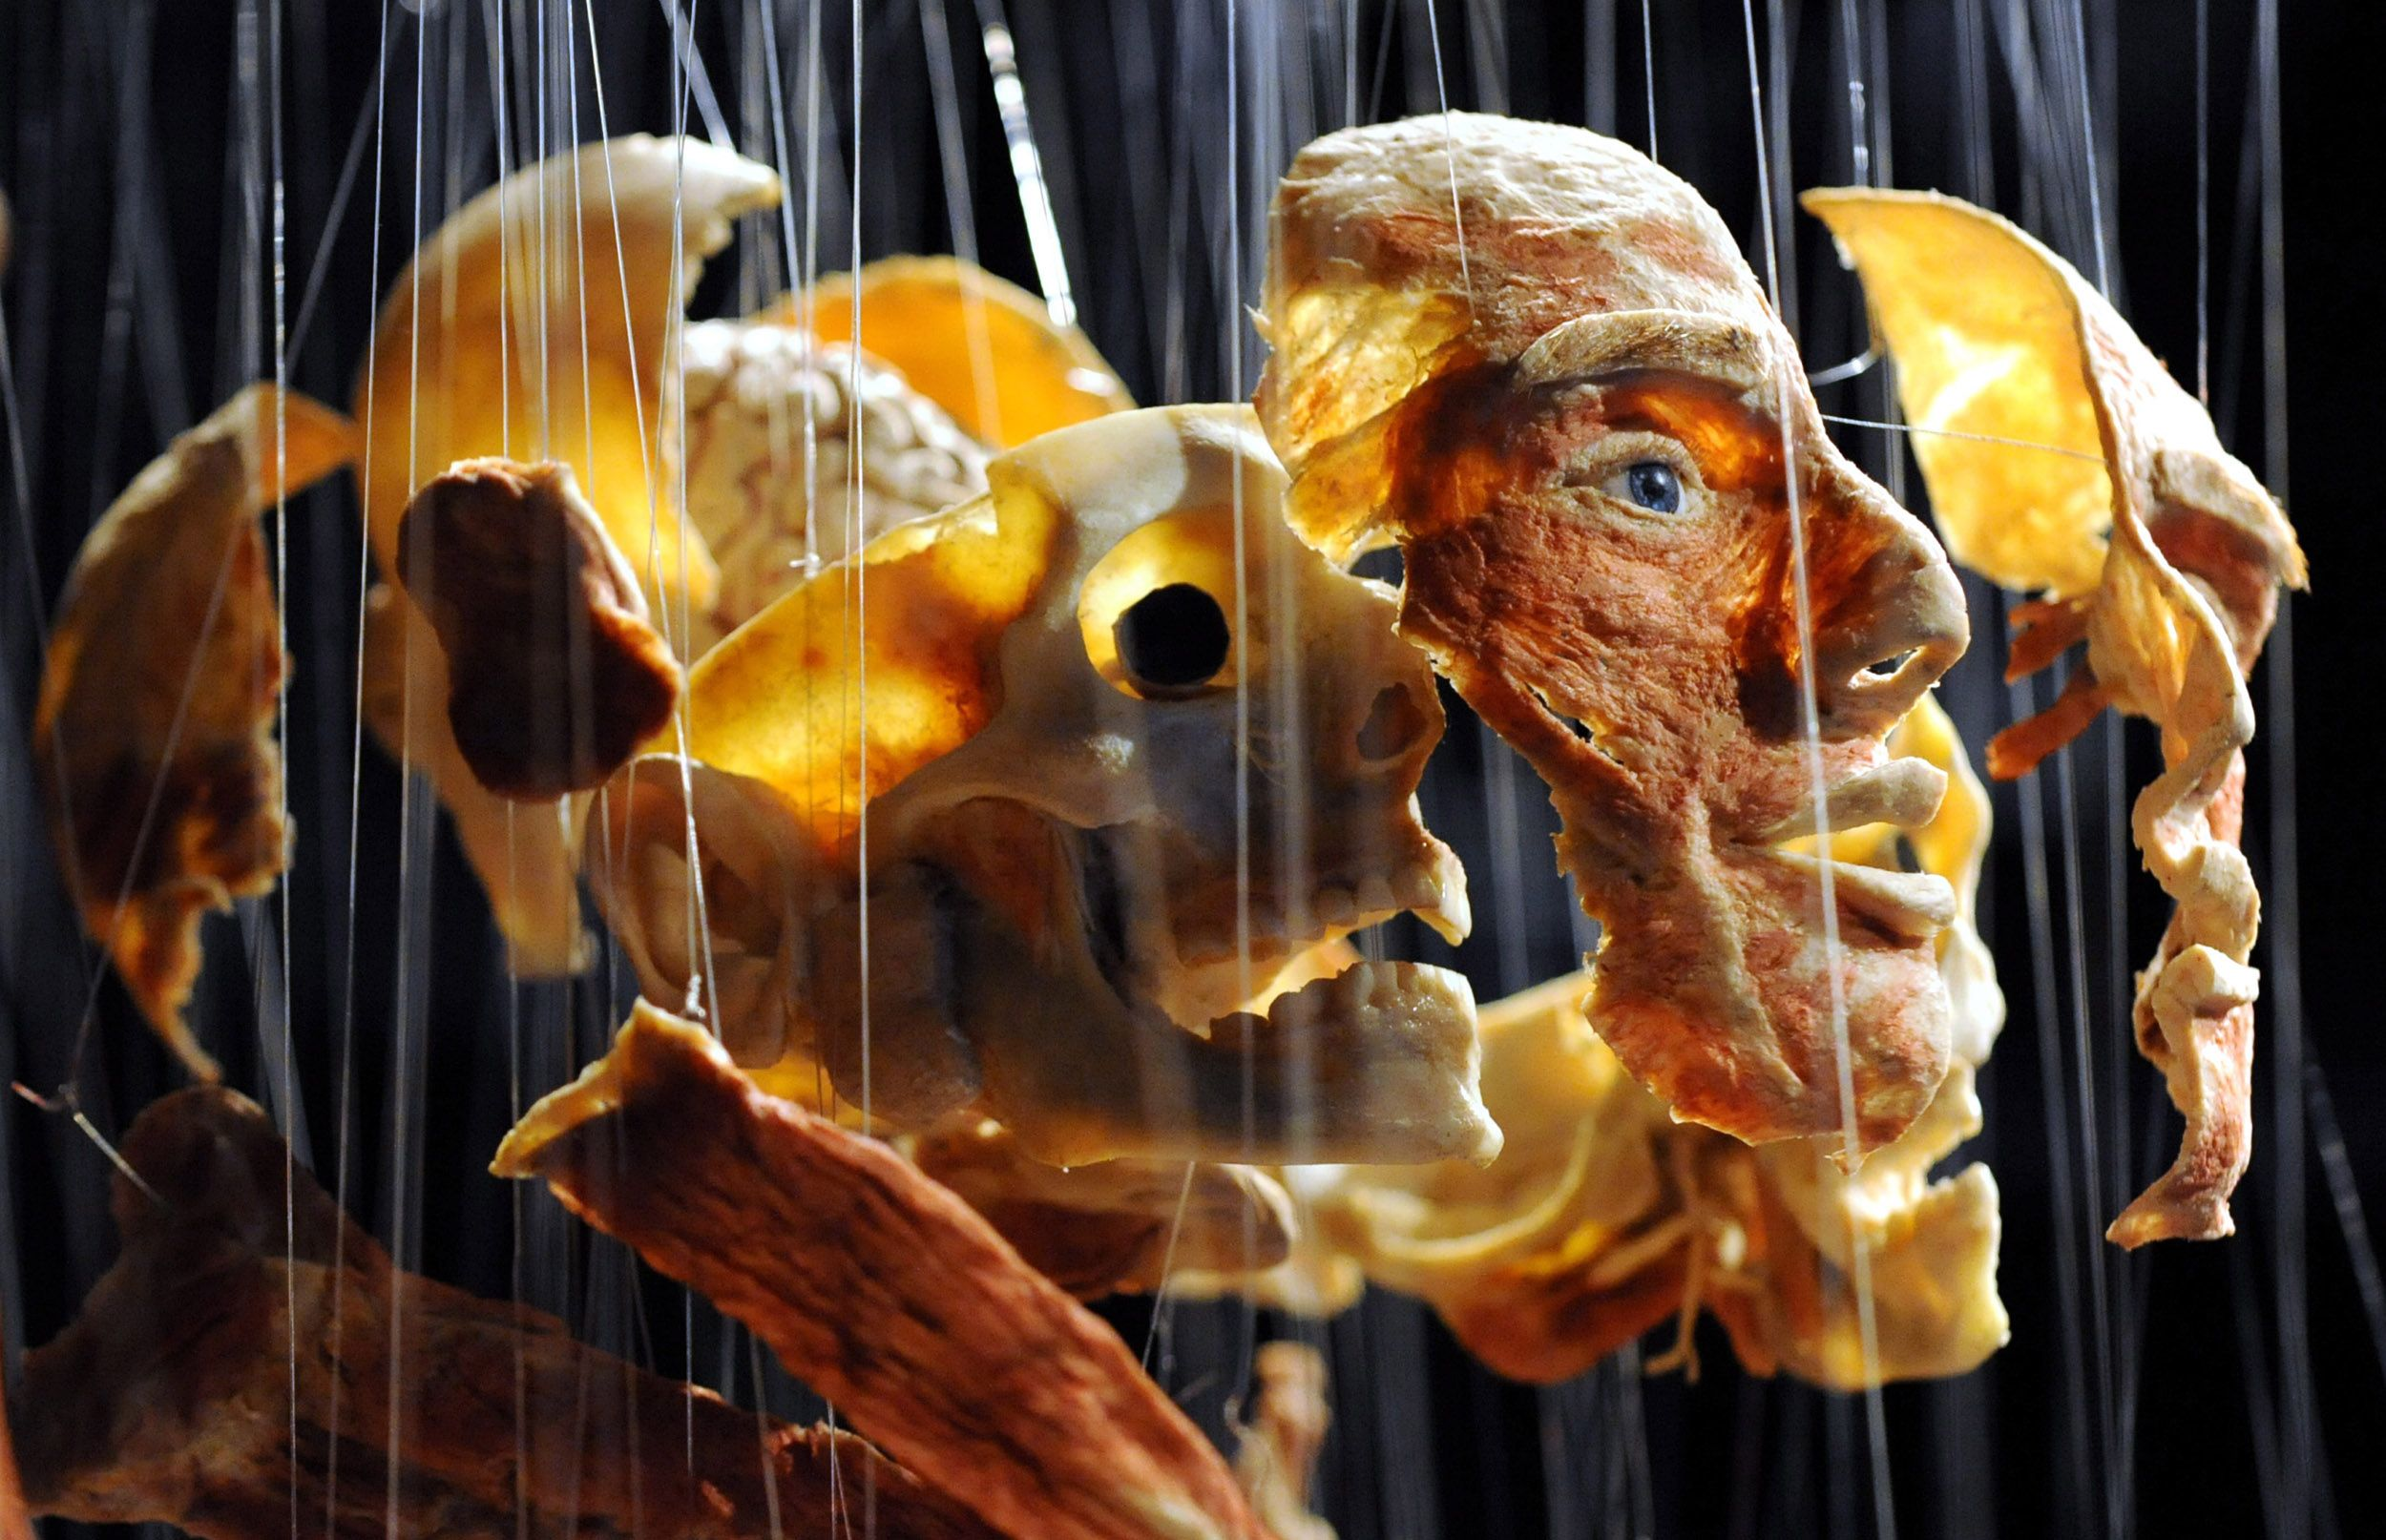 Result Gunther Von Hagens Exhibition 2014 In